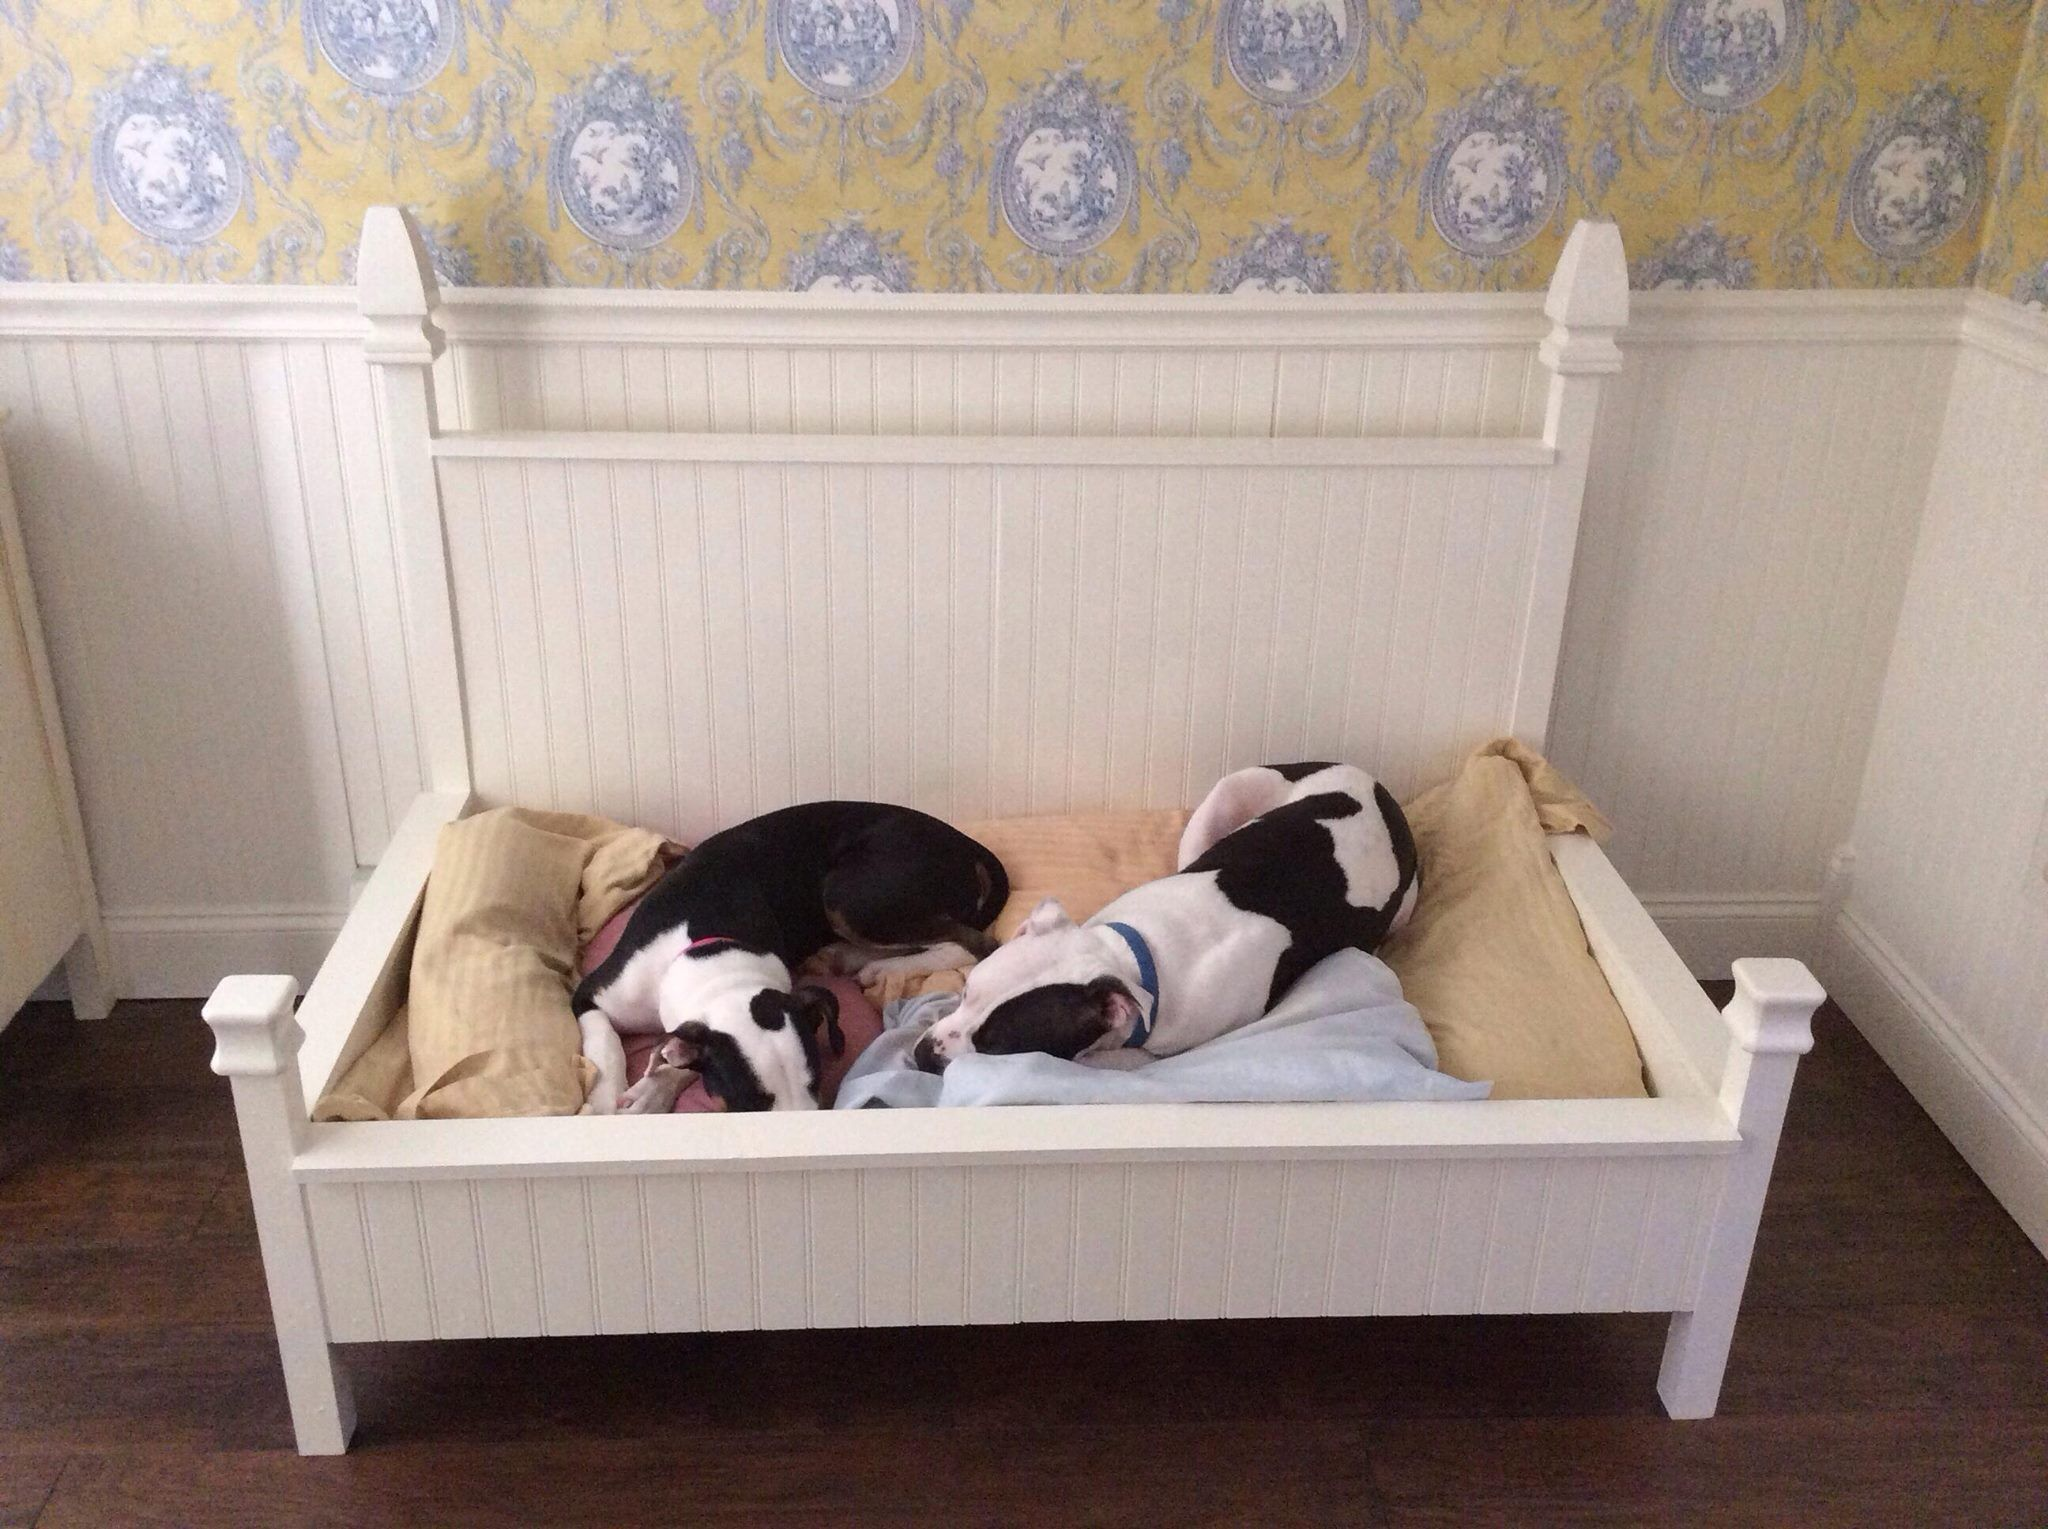 Four Poster Dog Bed Built To Hold A Baby Crib Mattress Baby